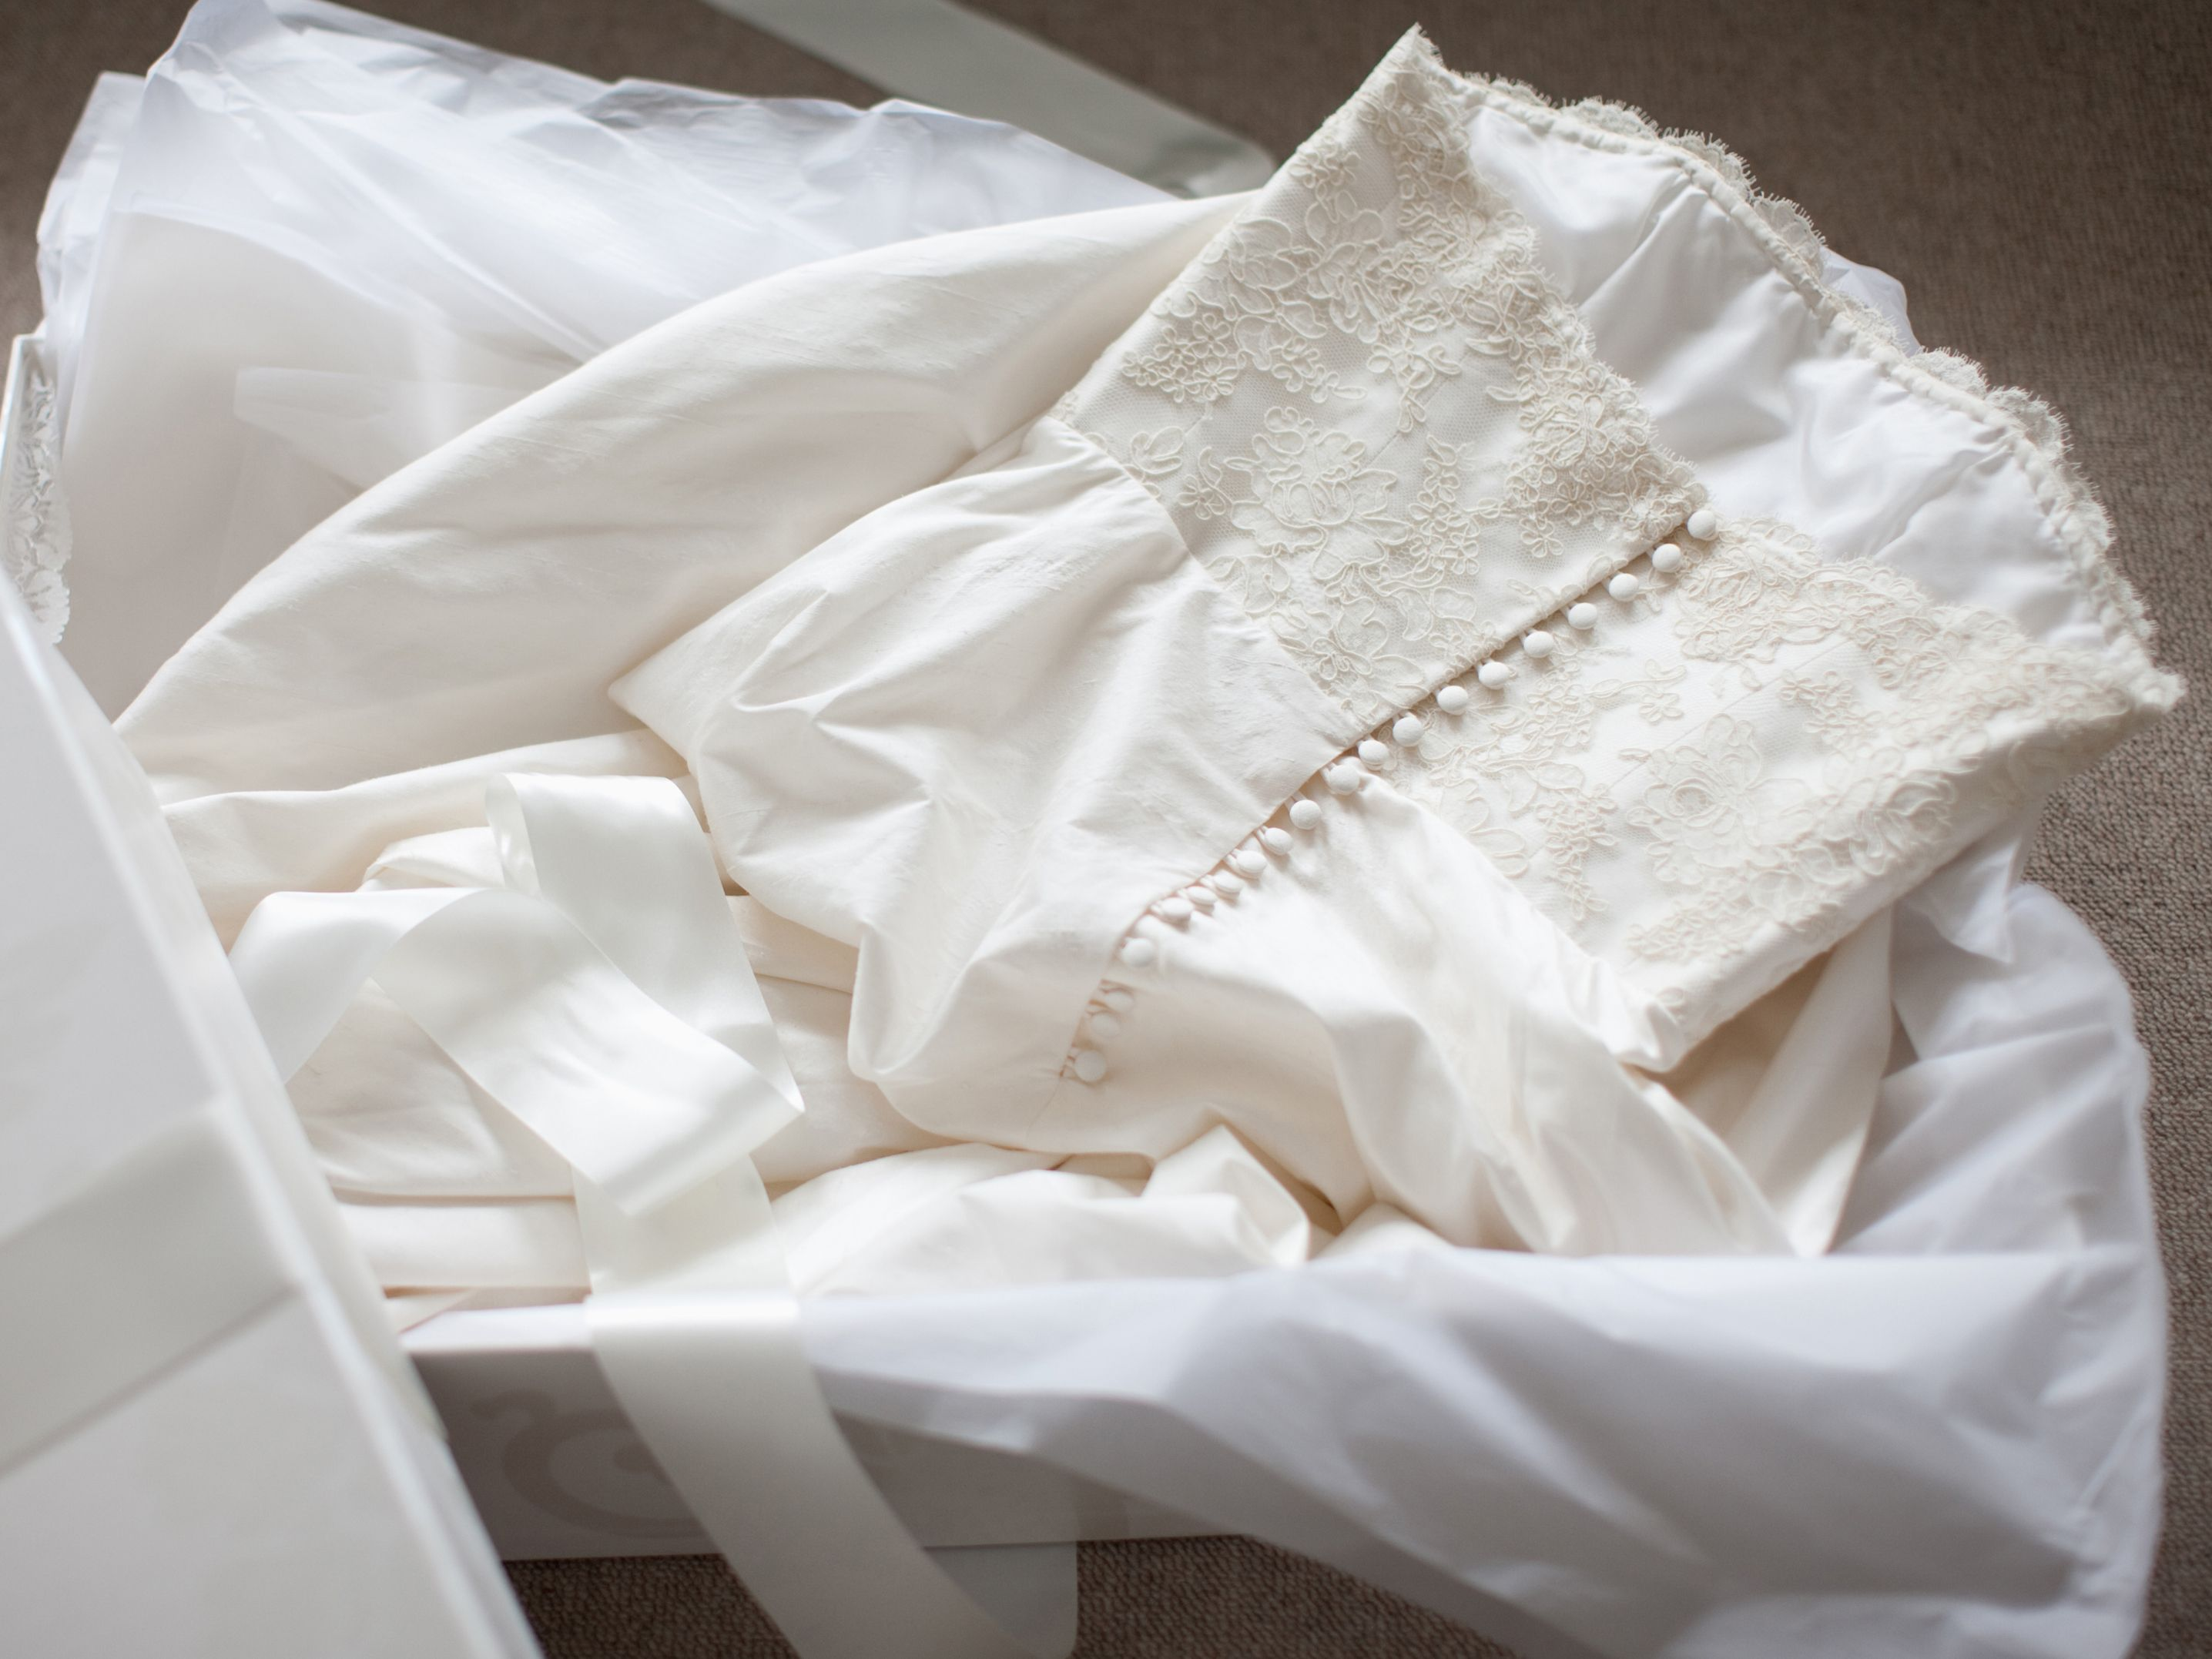 Used Wedding Dresses Where To Buy And Sell Online Wedding Dress Storage Frozen Wedding Dress Wedding Dress Preservation